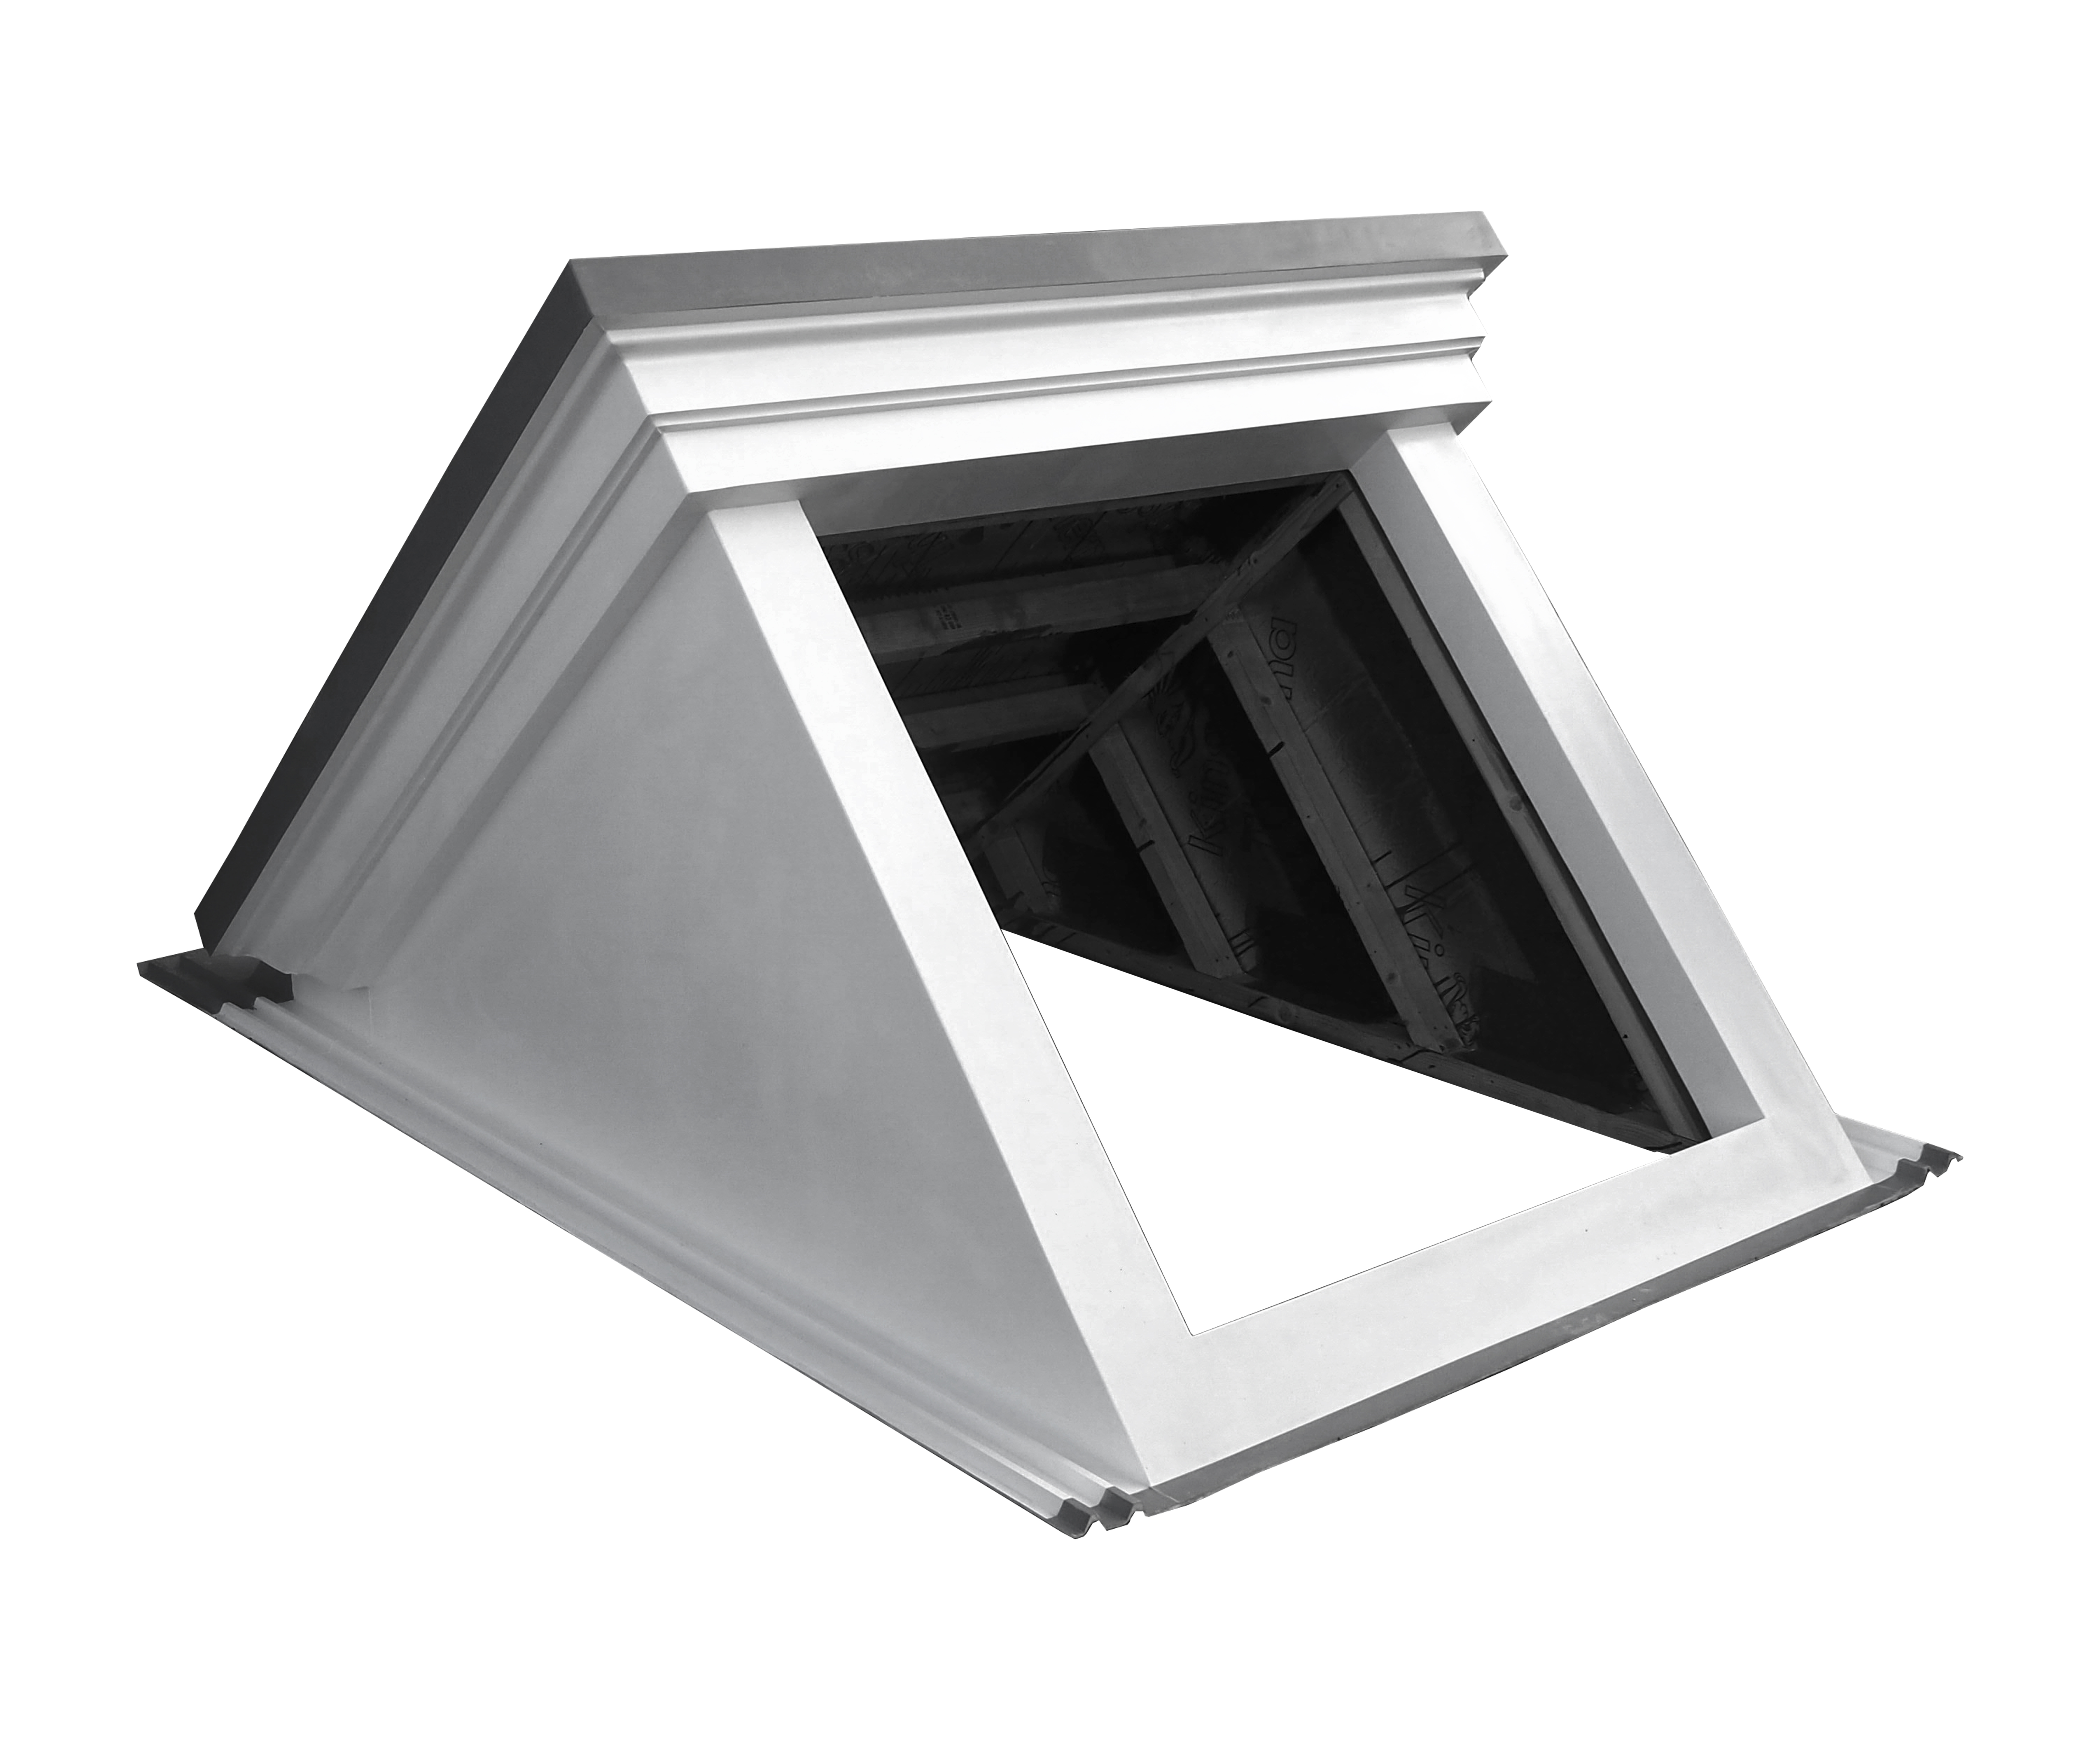 GRP dormer window for flat roofs